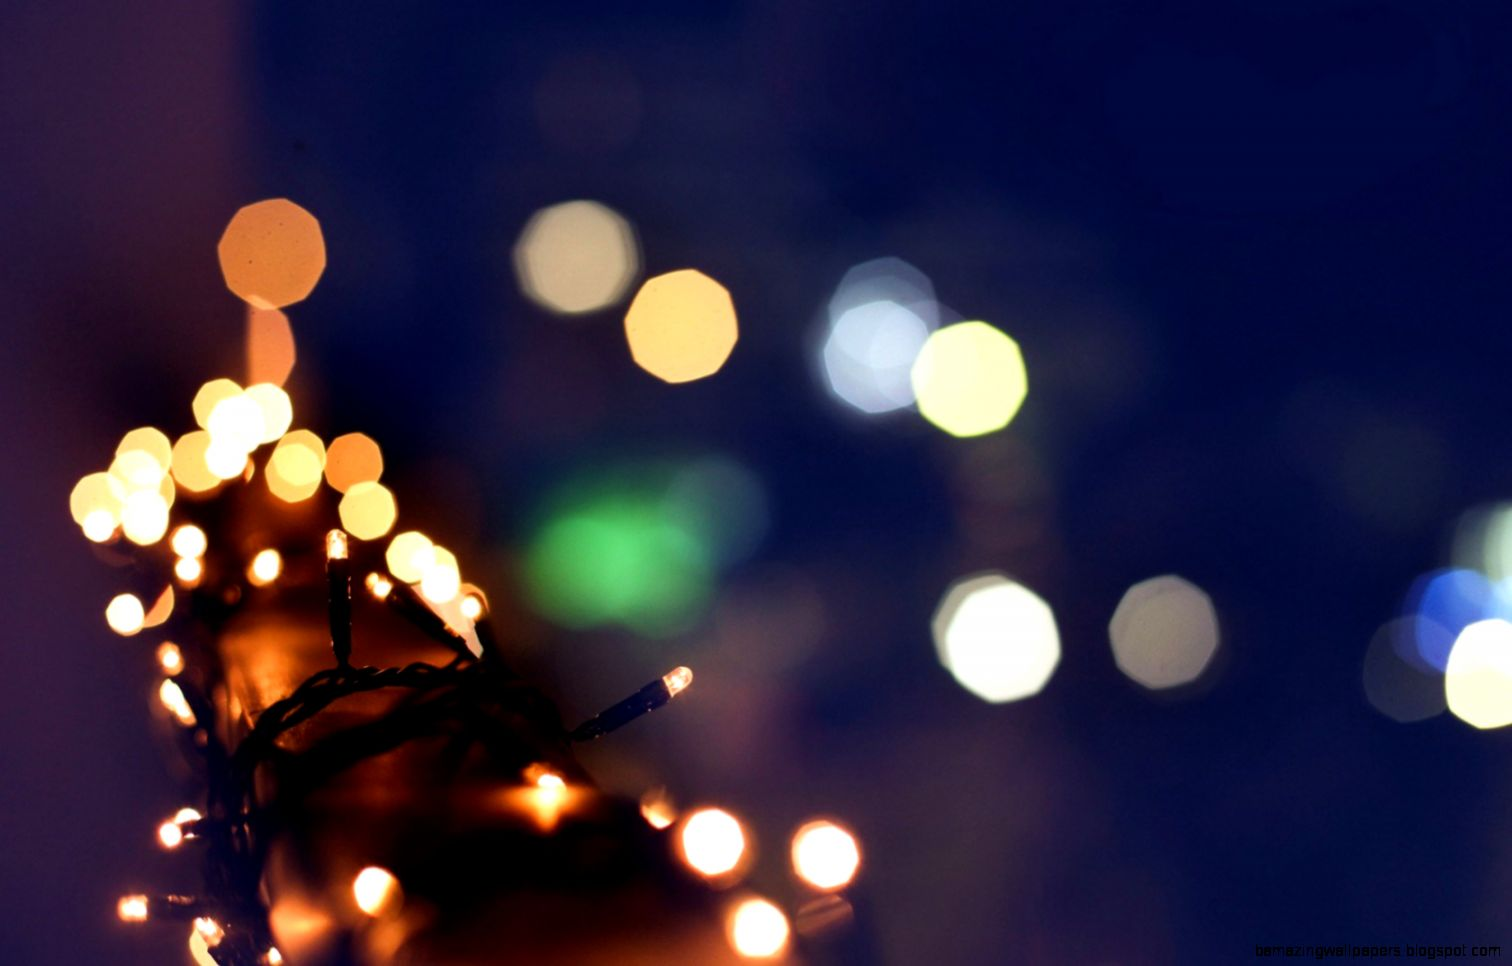 1000 images about advbk on Pinterest  Bokeh Blurred lights and